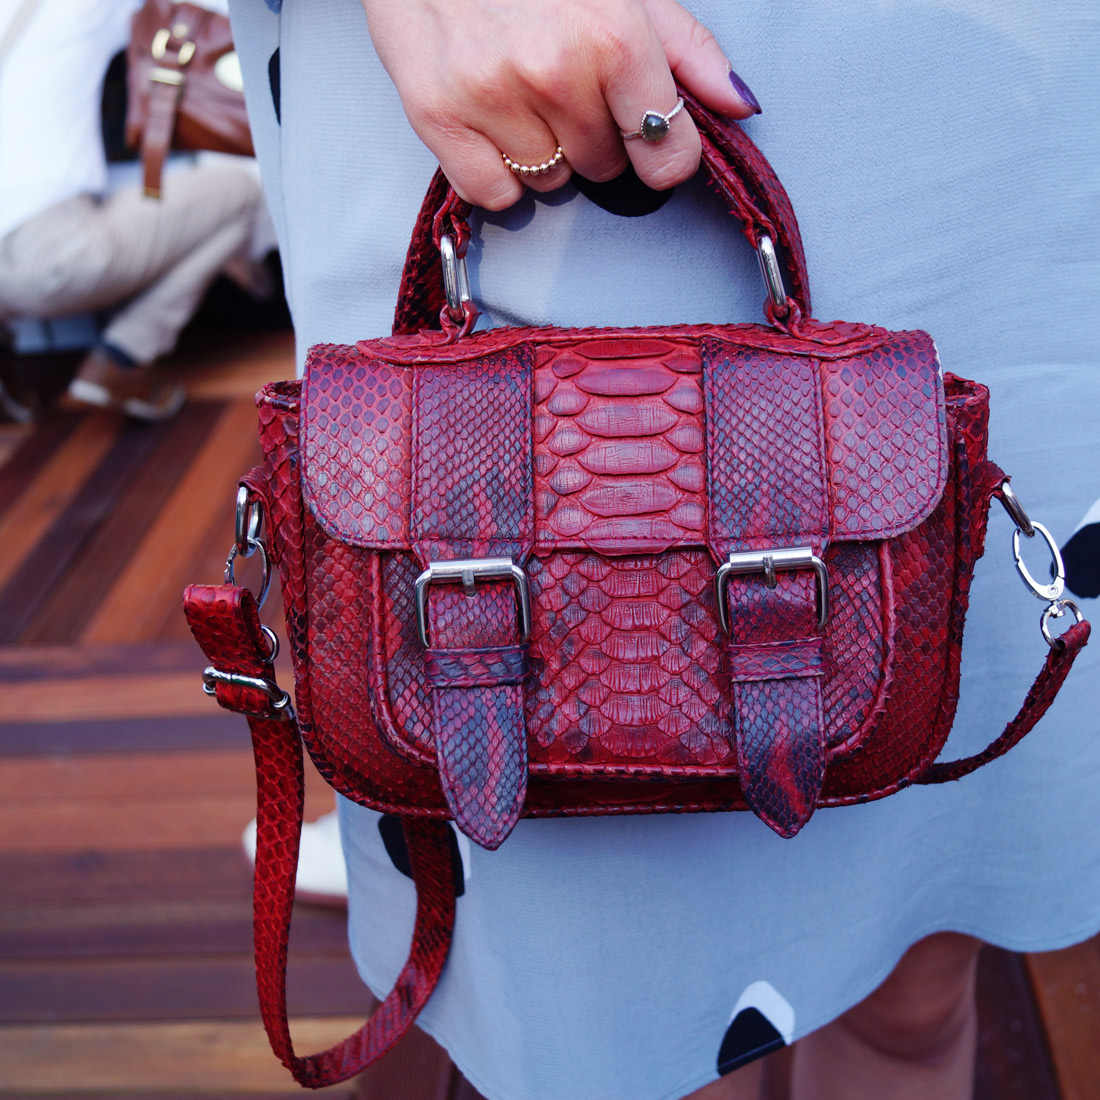 Bag-at-You---Fashion-blog---Helmer-bag-at-MBFWA